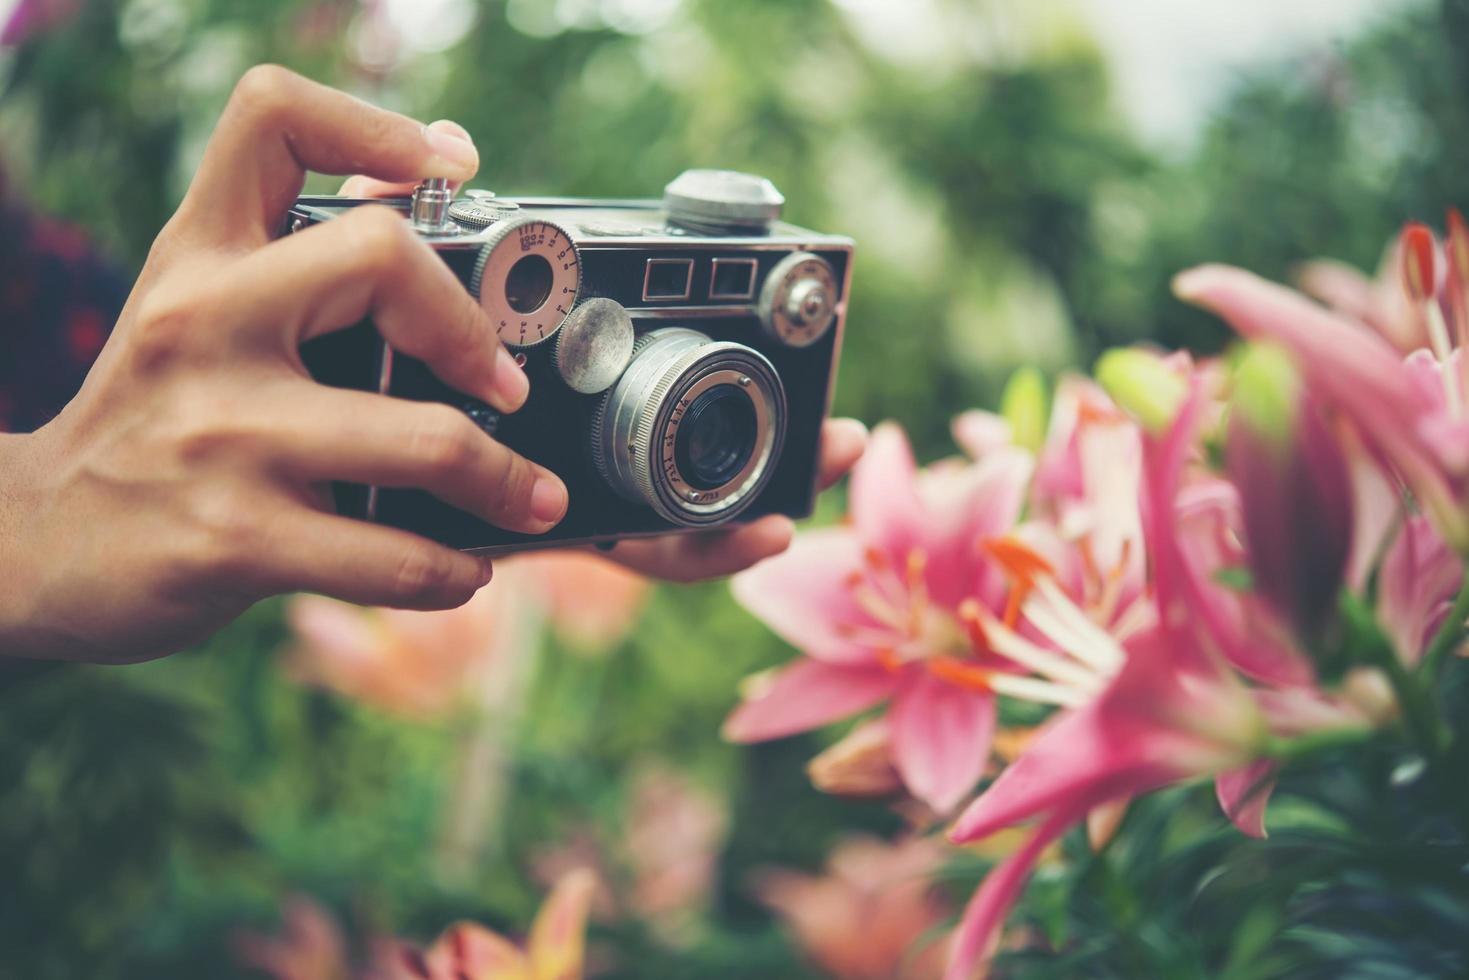 Close-up of a woman's hand with a vintage camera shooting flowers in a garden photo